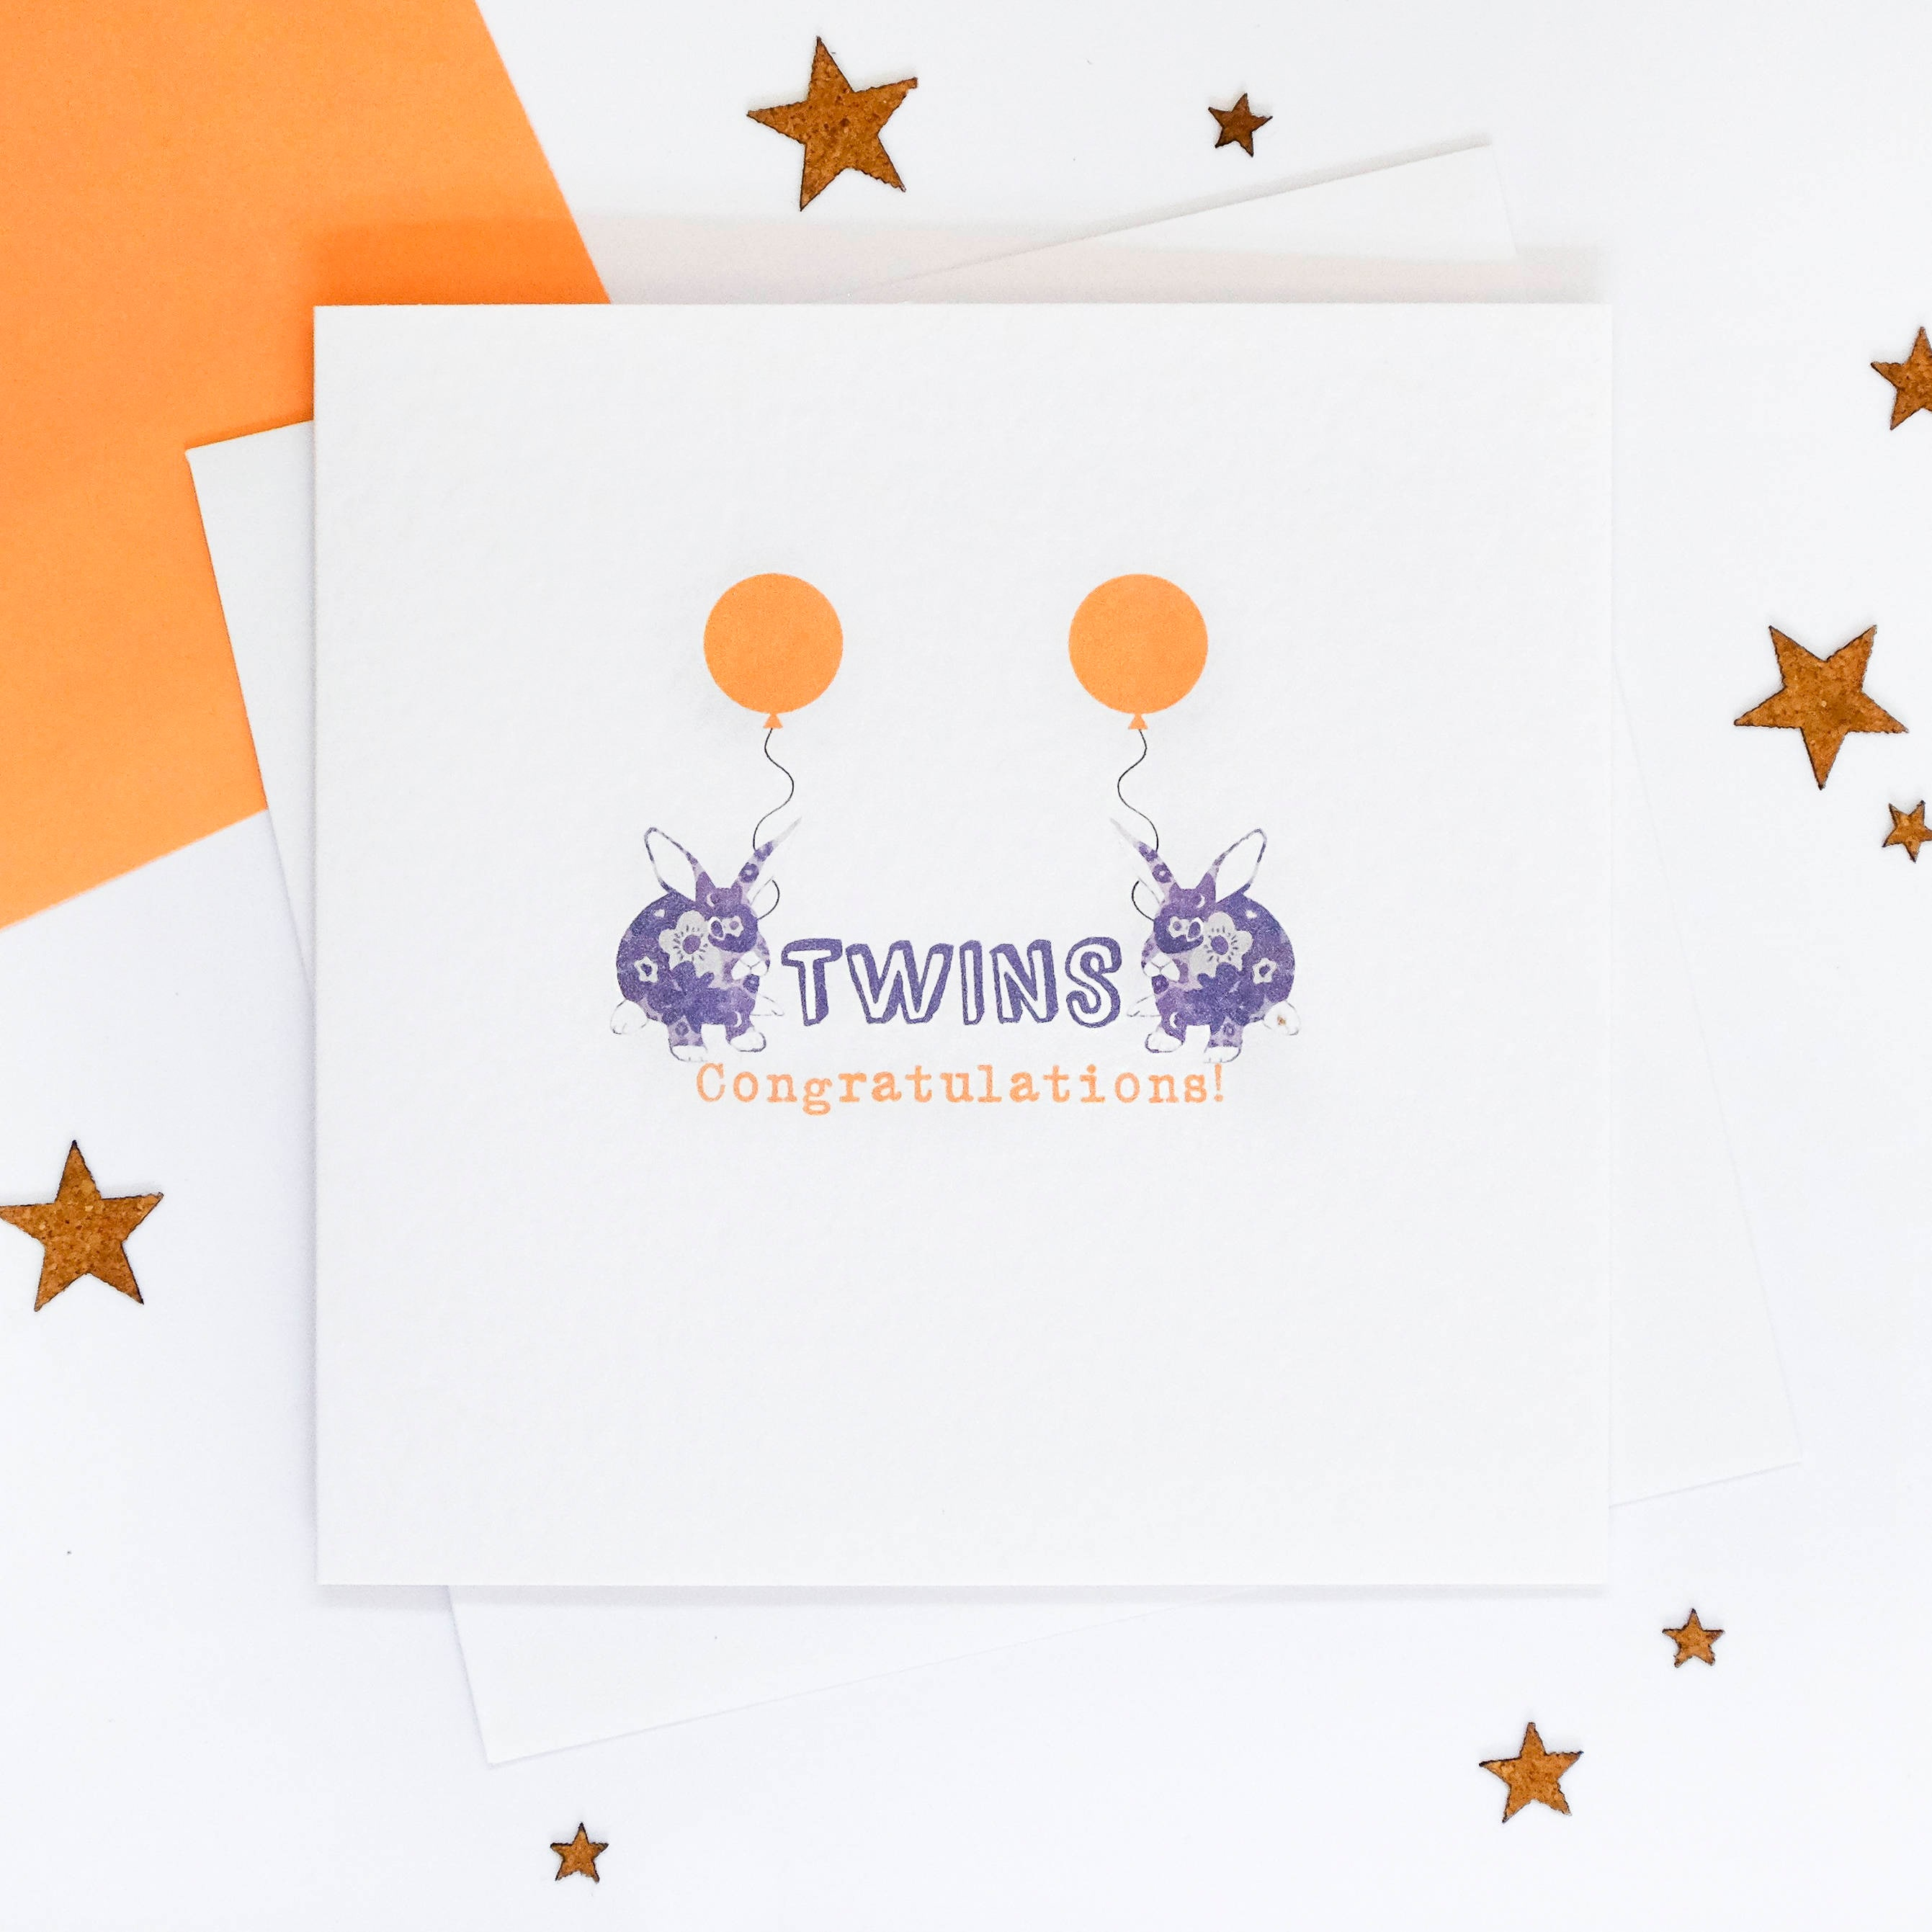 twins twins birthday card congratulations newborn twins twin babies twin boys twin girls baby card newborn baby blank inside - New Born Baby Card